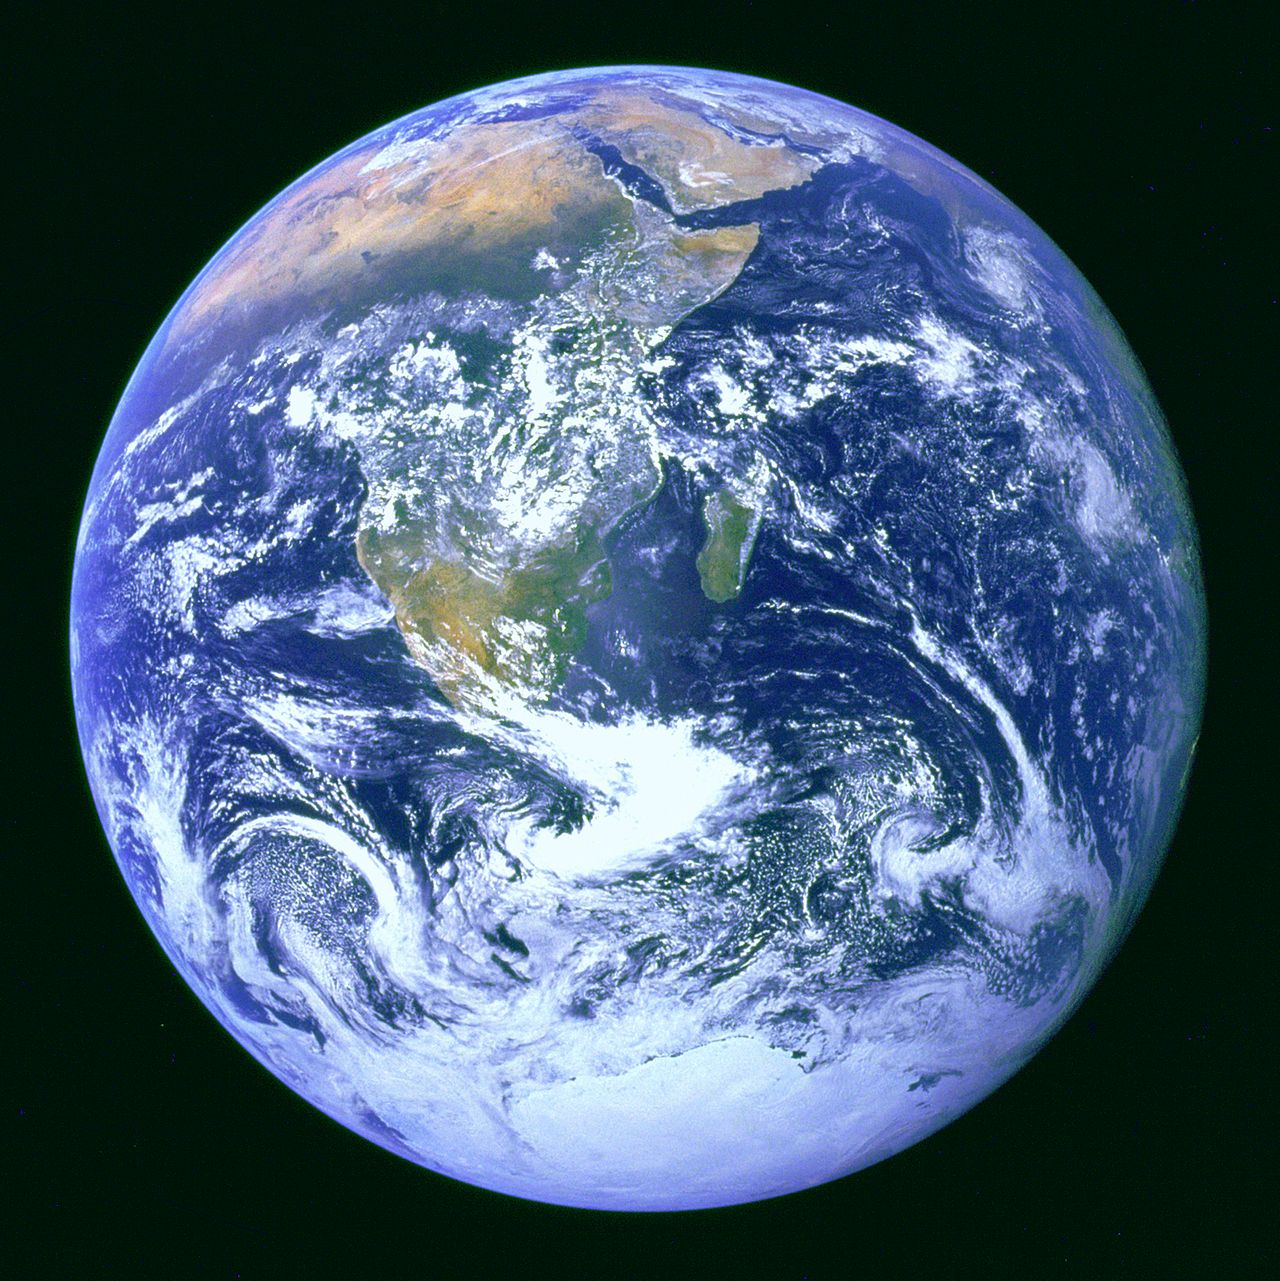 Image of Earth.